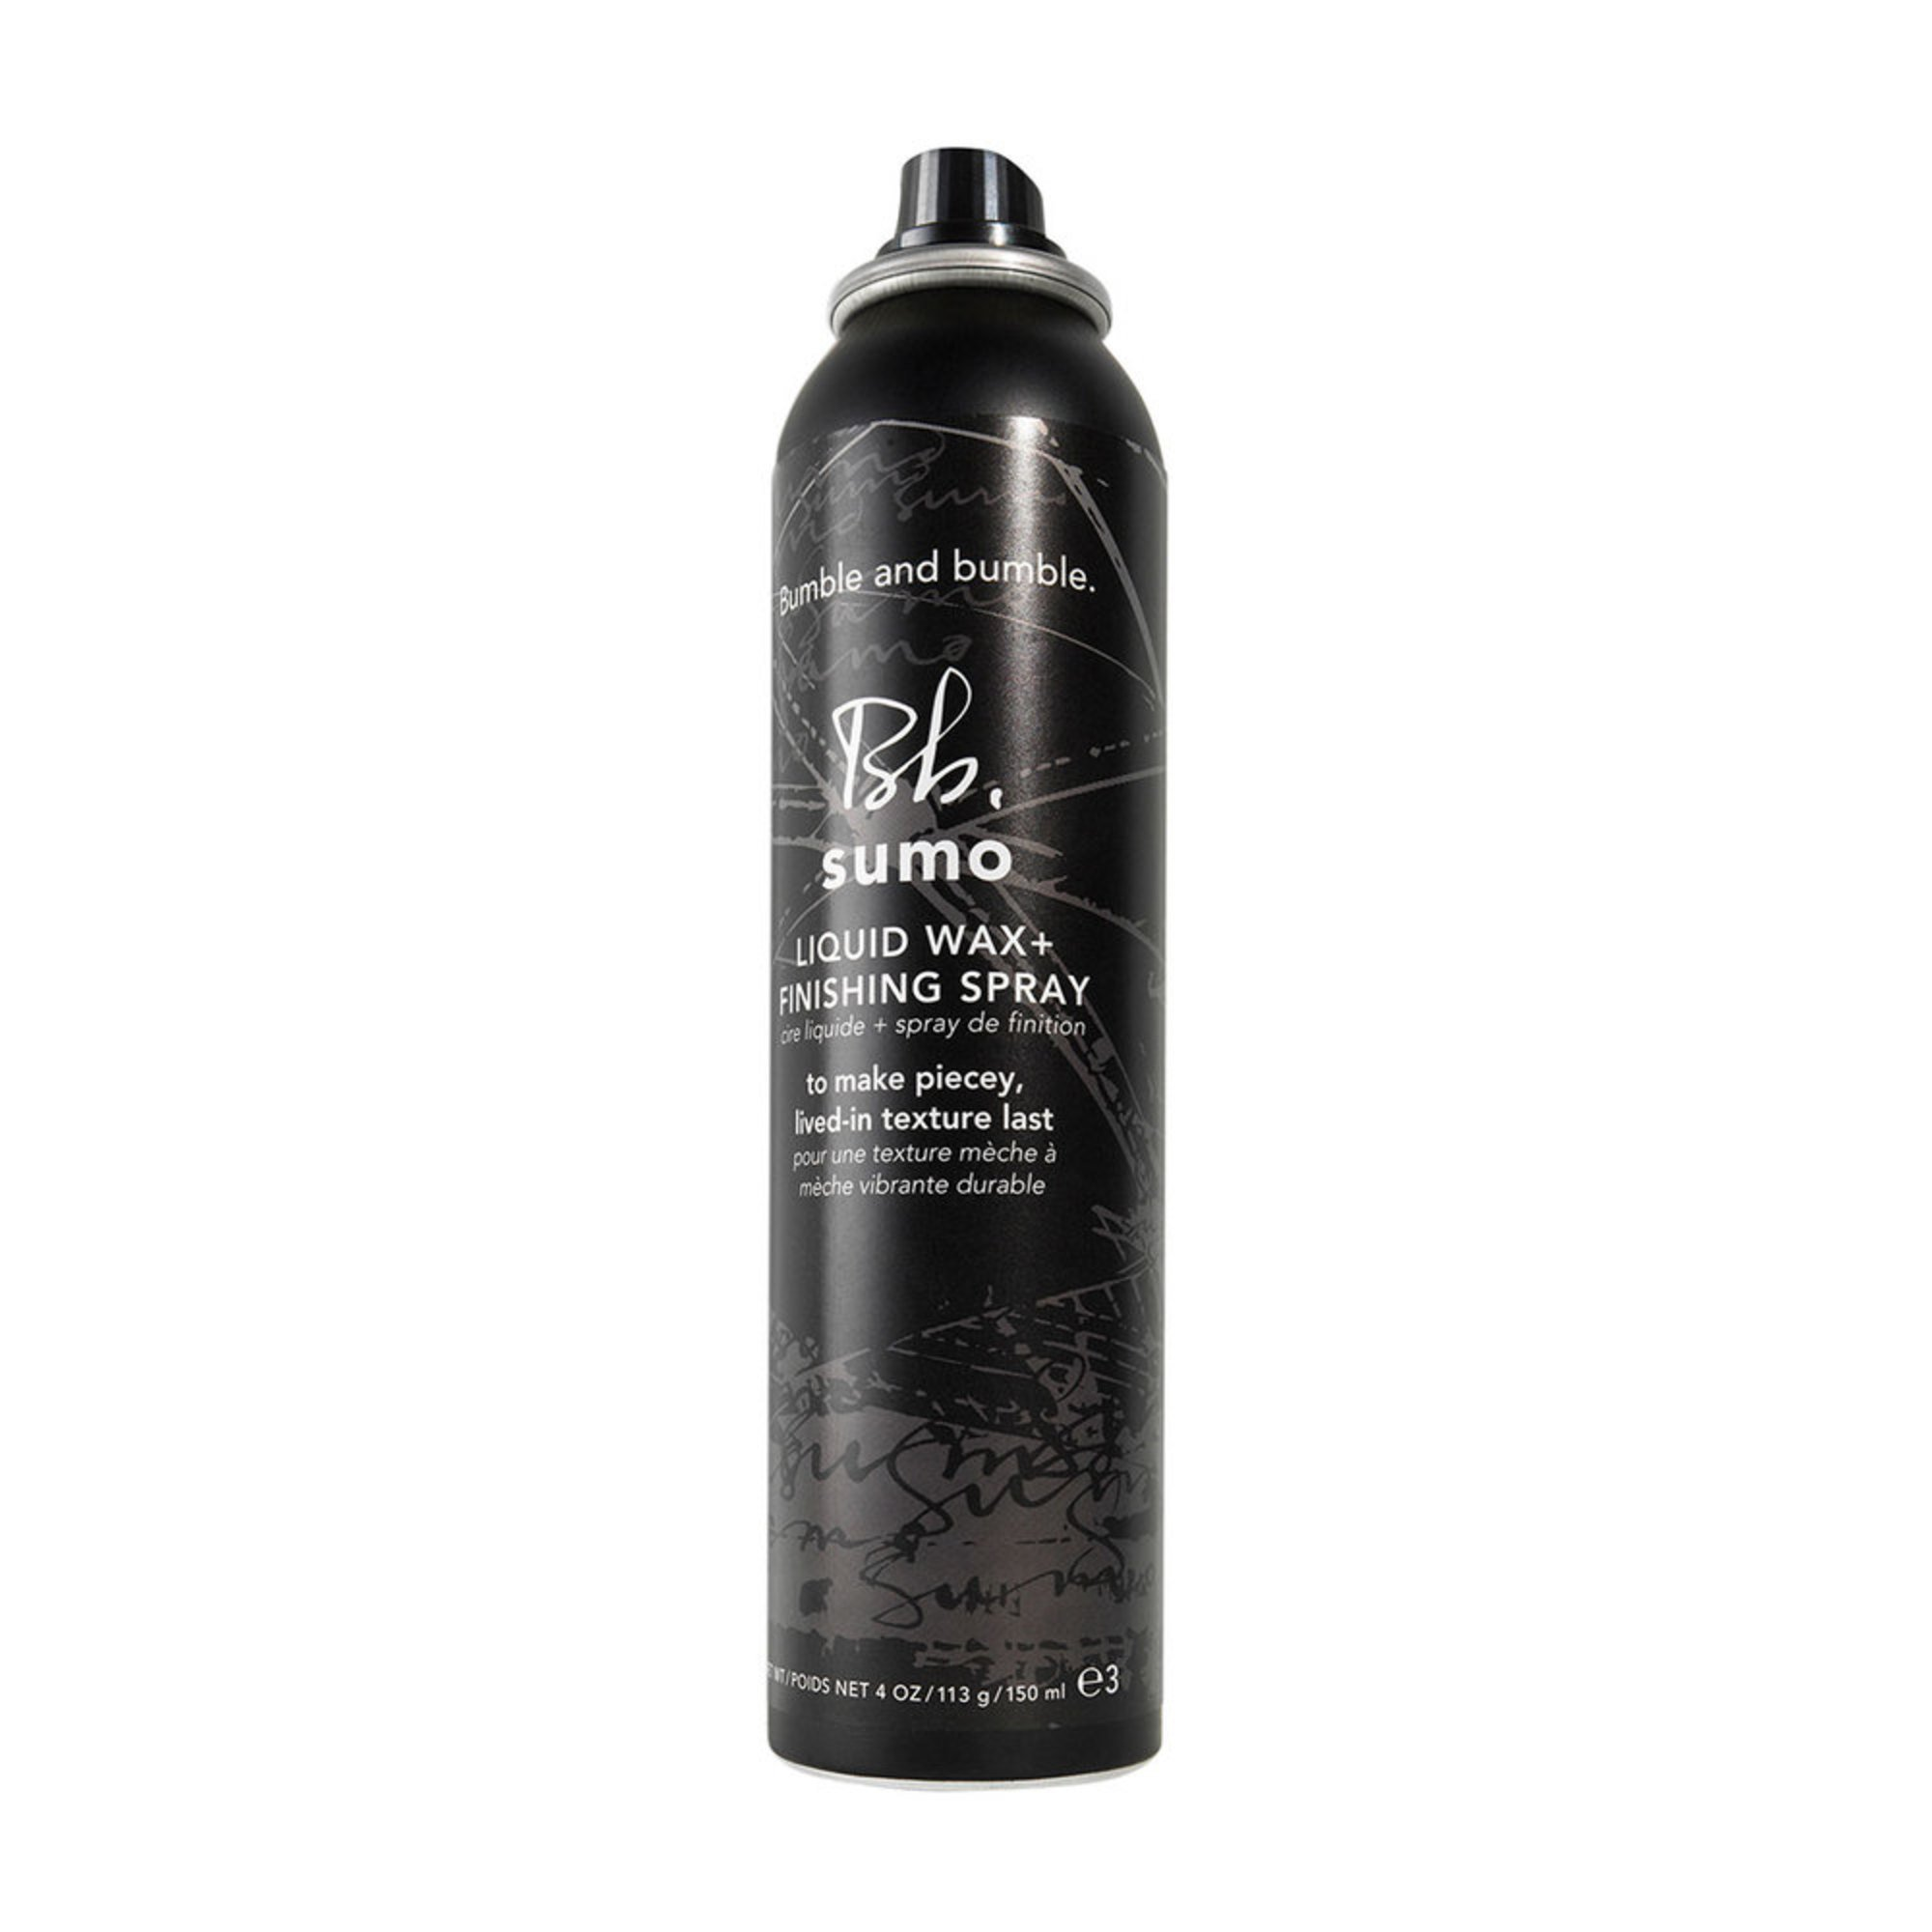 Bumble And Bumble Sumo Liquid Wax Finishing Spray Hairspray Beauty Shop Your Navy Exchange Official Site